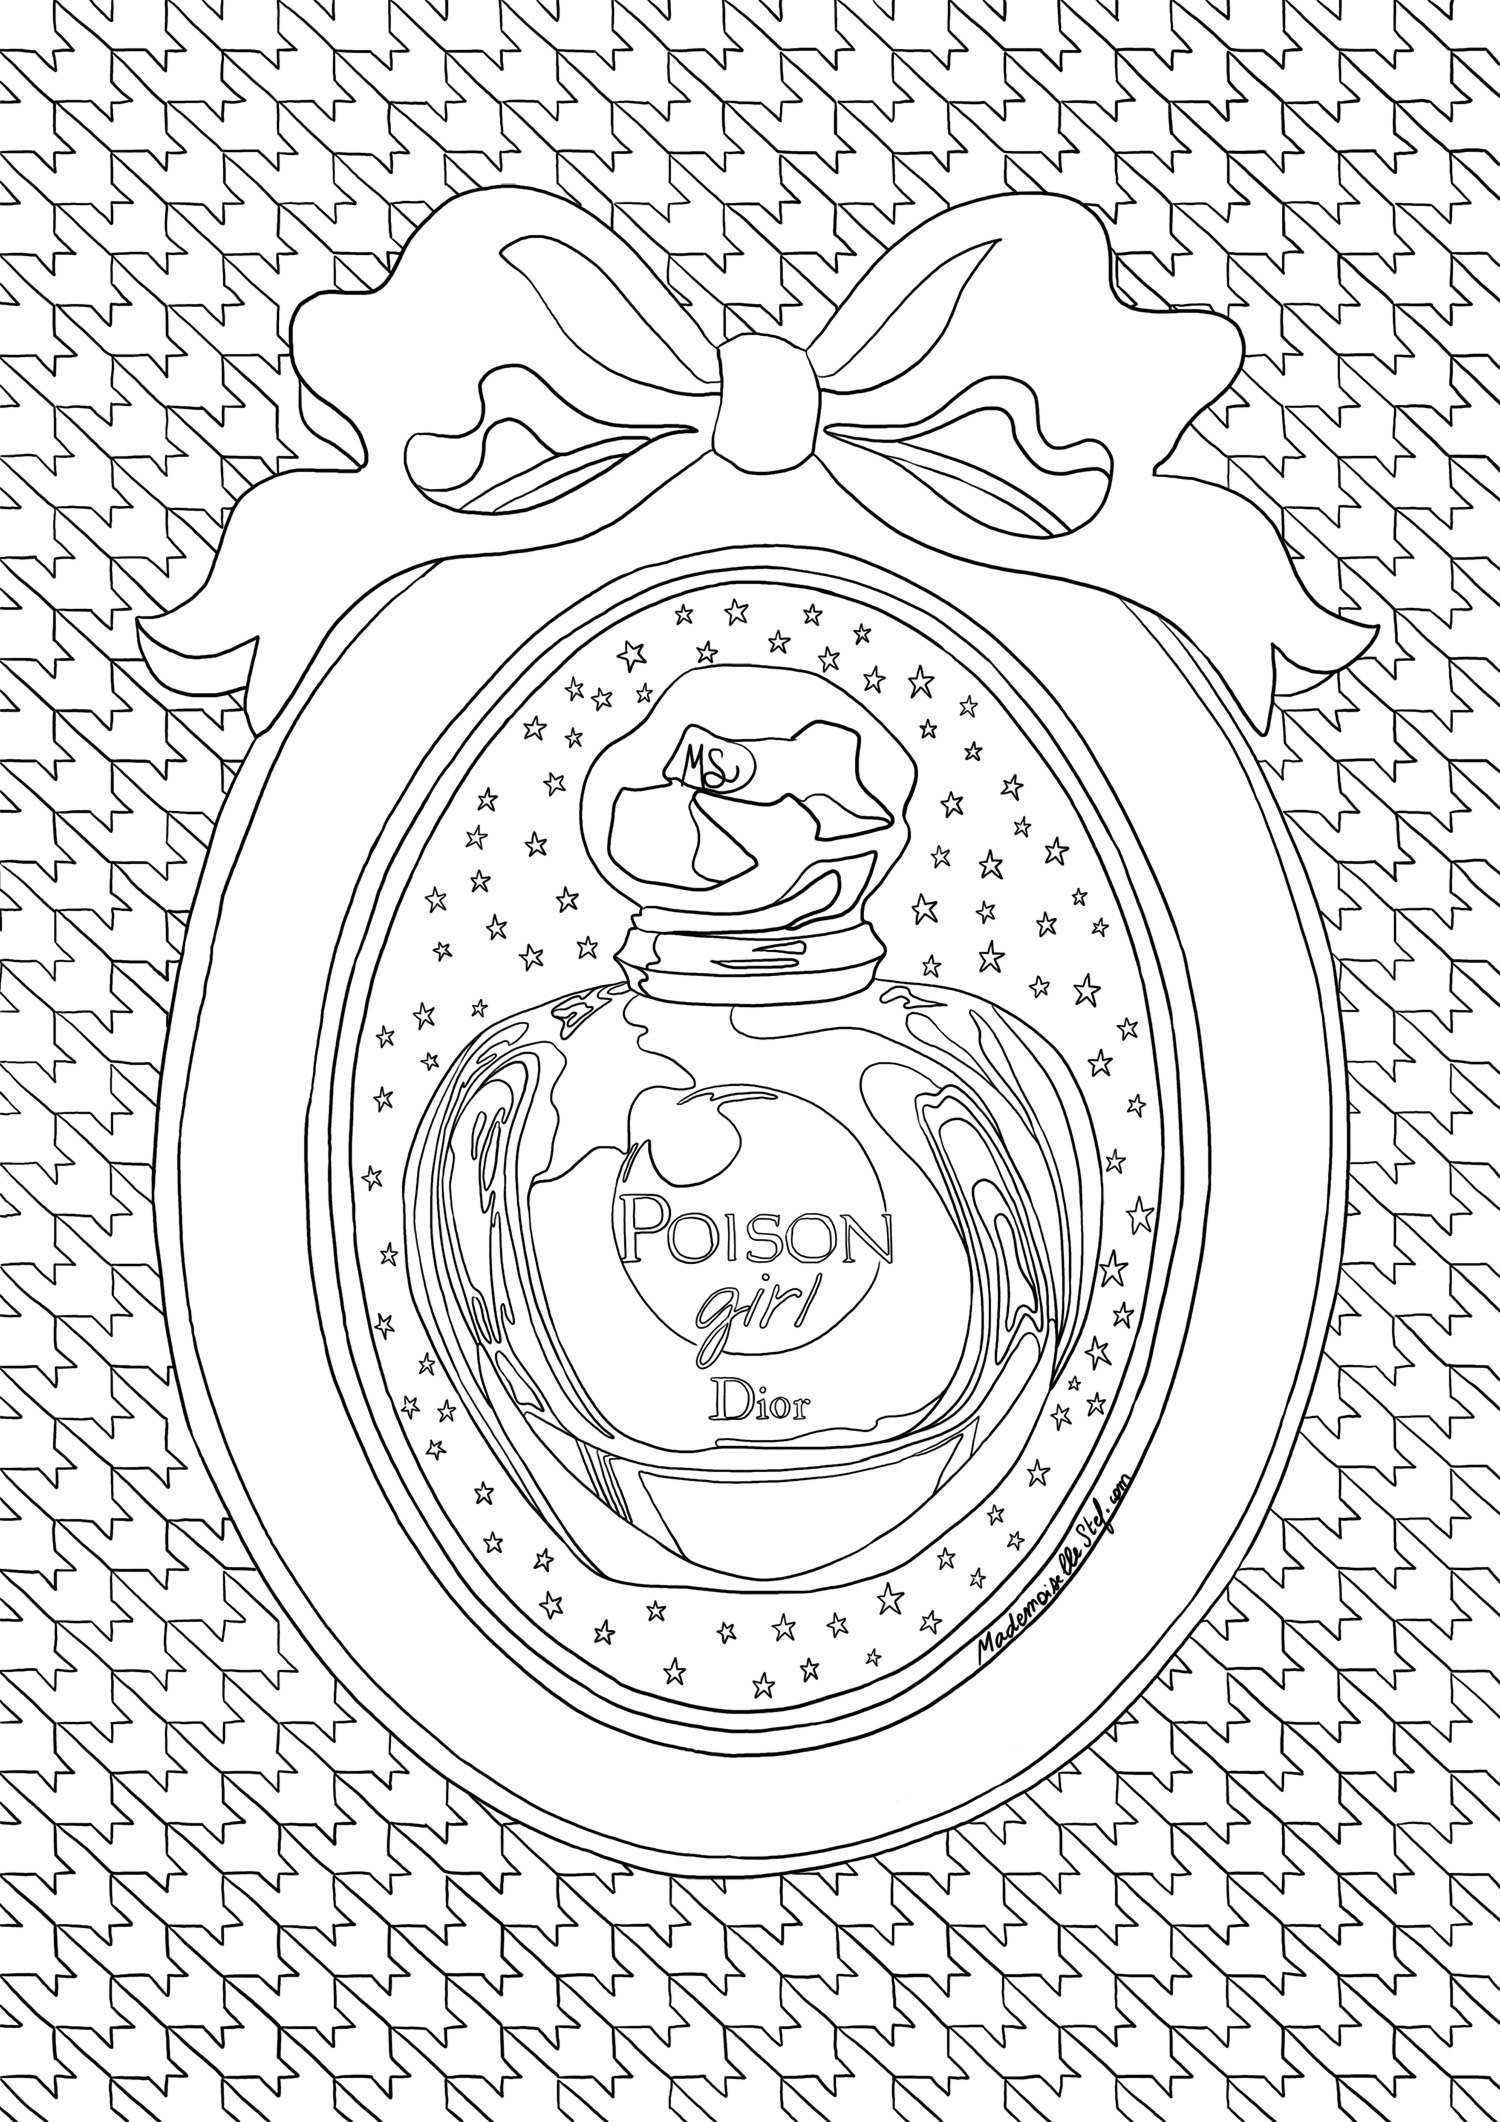 coloriage dior poison girl